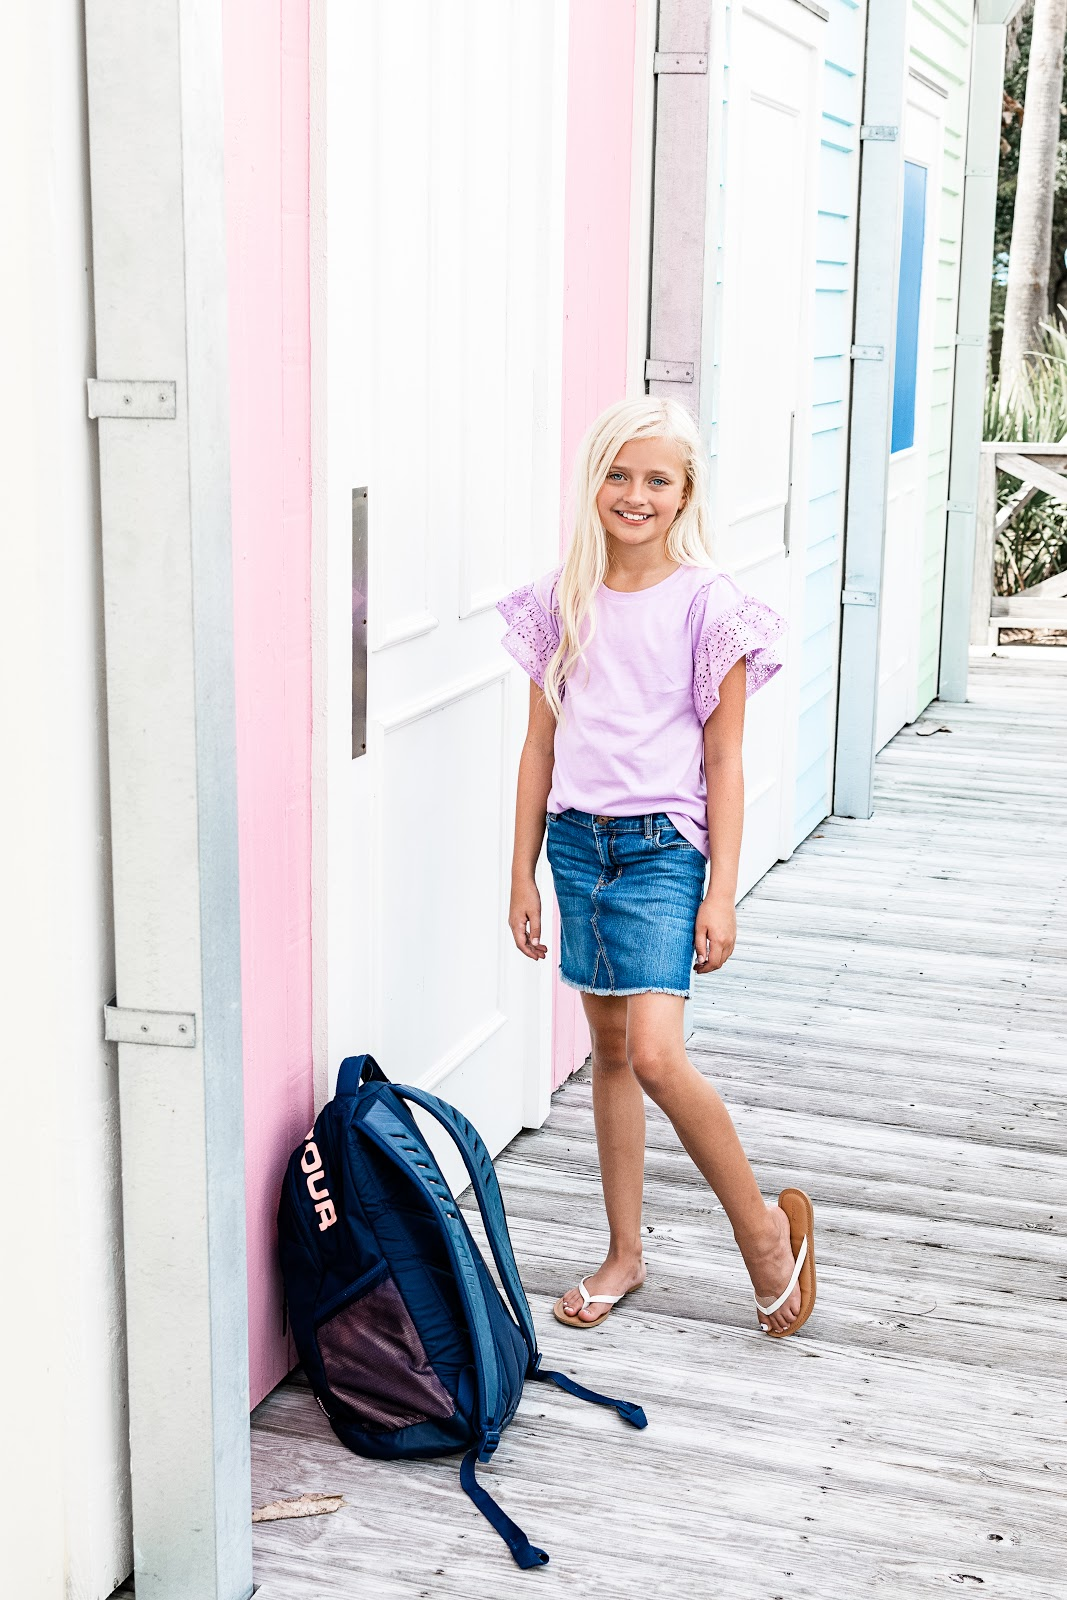 Back to School Shopping and First Day Looks with OshKosh! OshKosh Bgosh Back to School shirt back to school pants back to school shorts back to school skirt back to school look backpack outfit style clothes fashion ideas inspiration back to school shopping  OshKosh coupon code OshKosh promo code